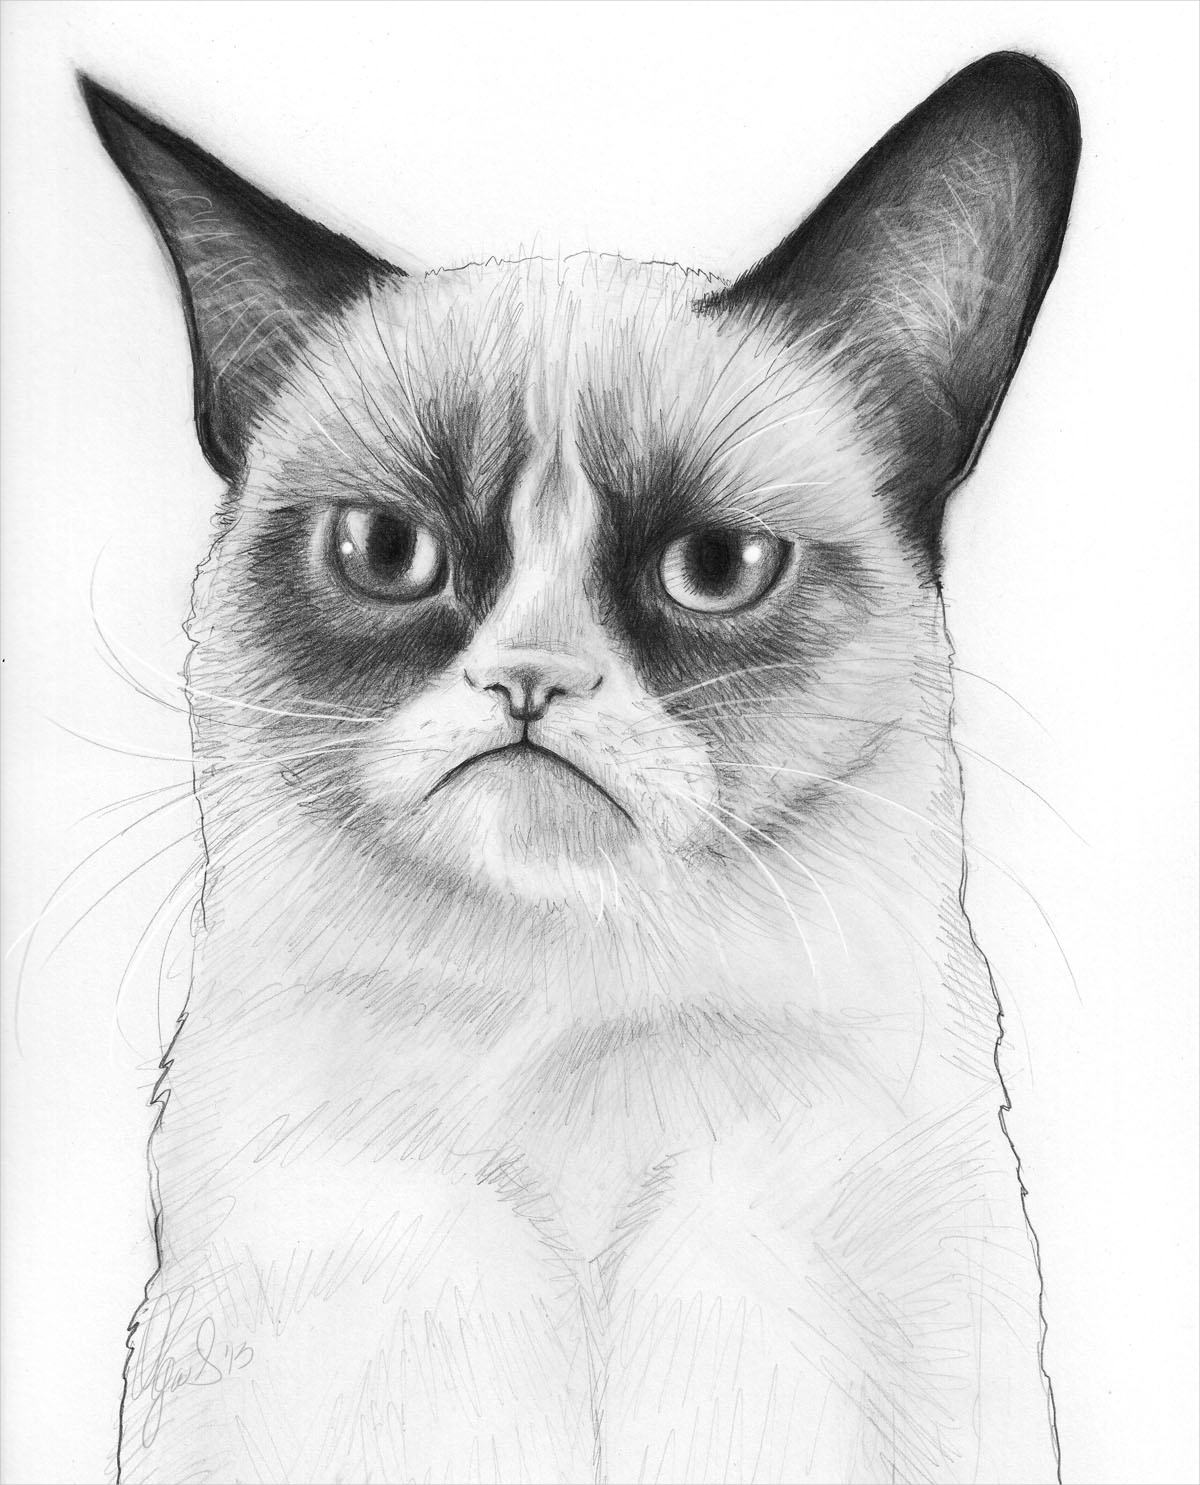 grumpy cat pencil drawing